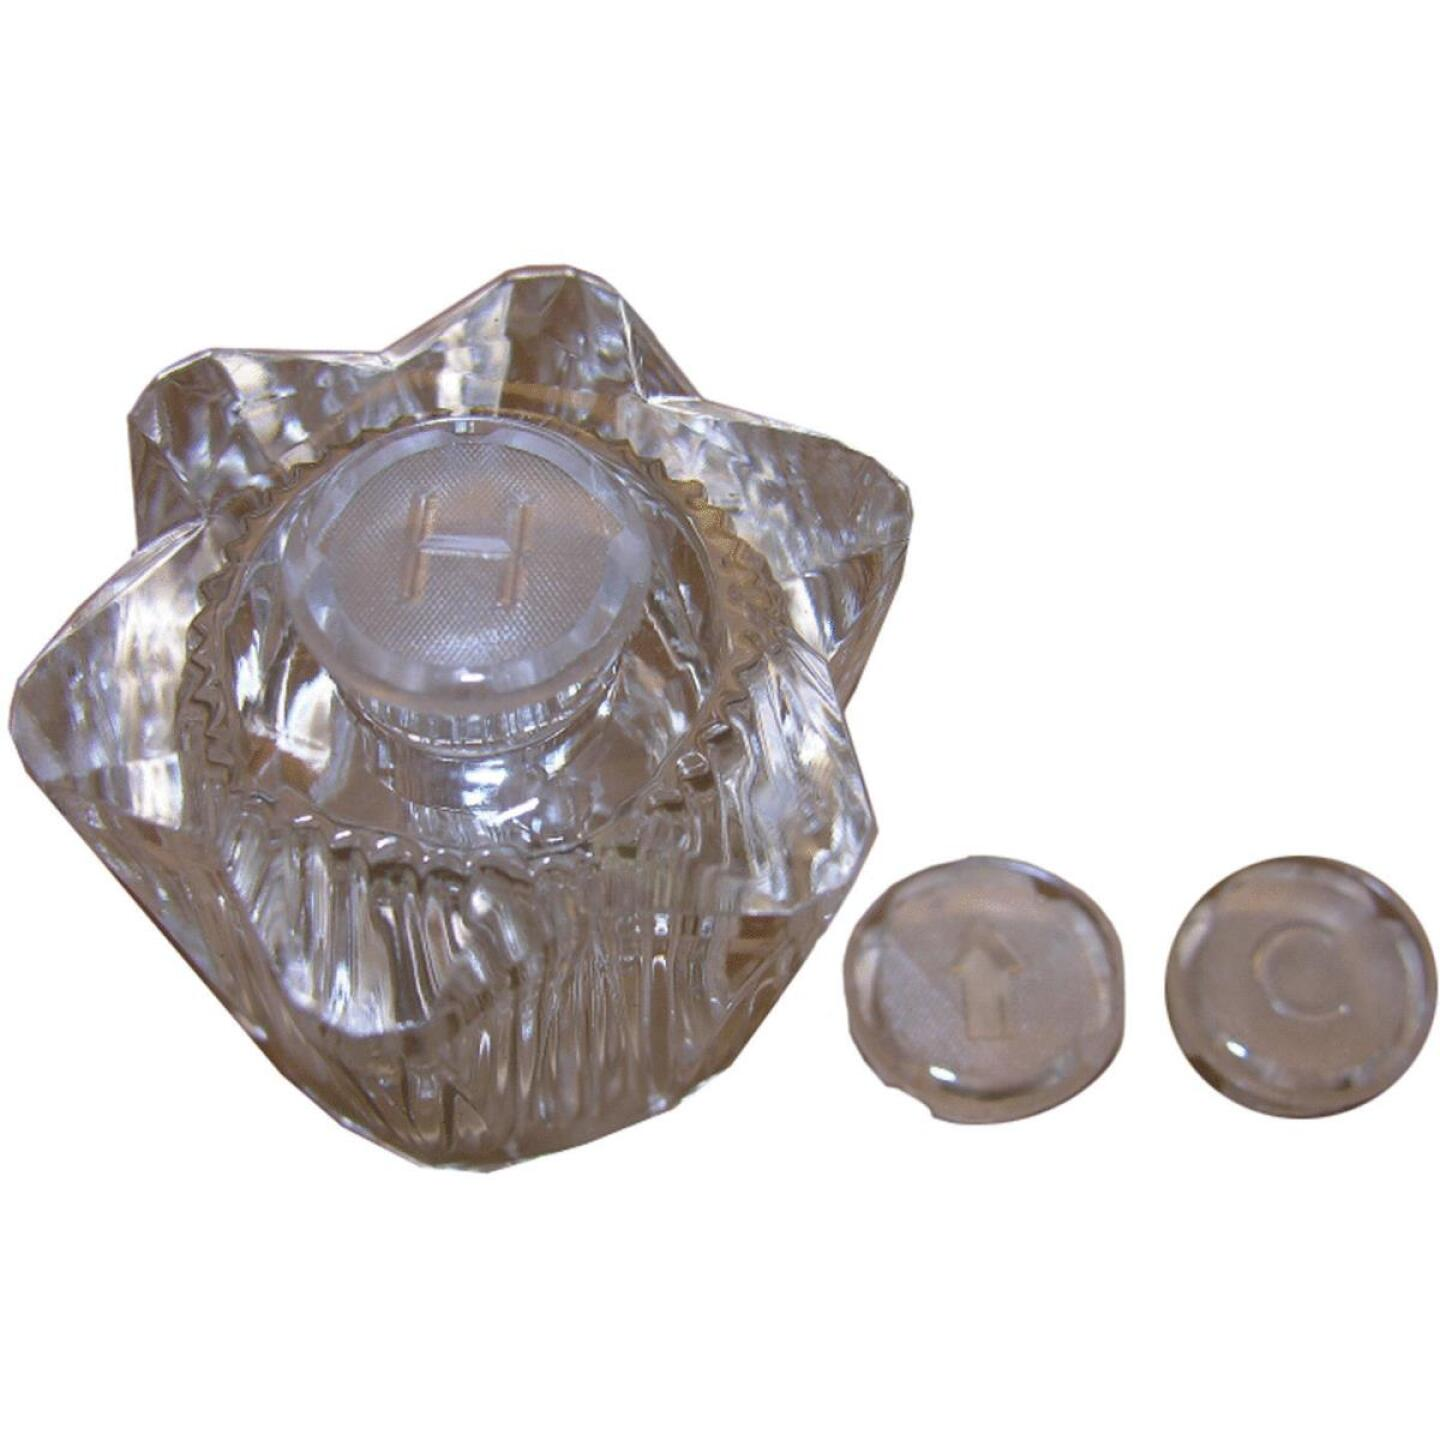 Lasco Streamway Hot, Cold or Diverter Clear Tub & Shower Handle Kit Image 1